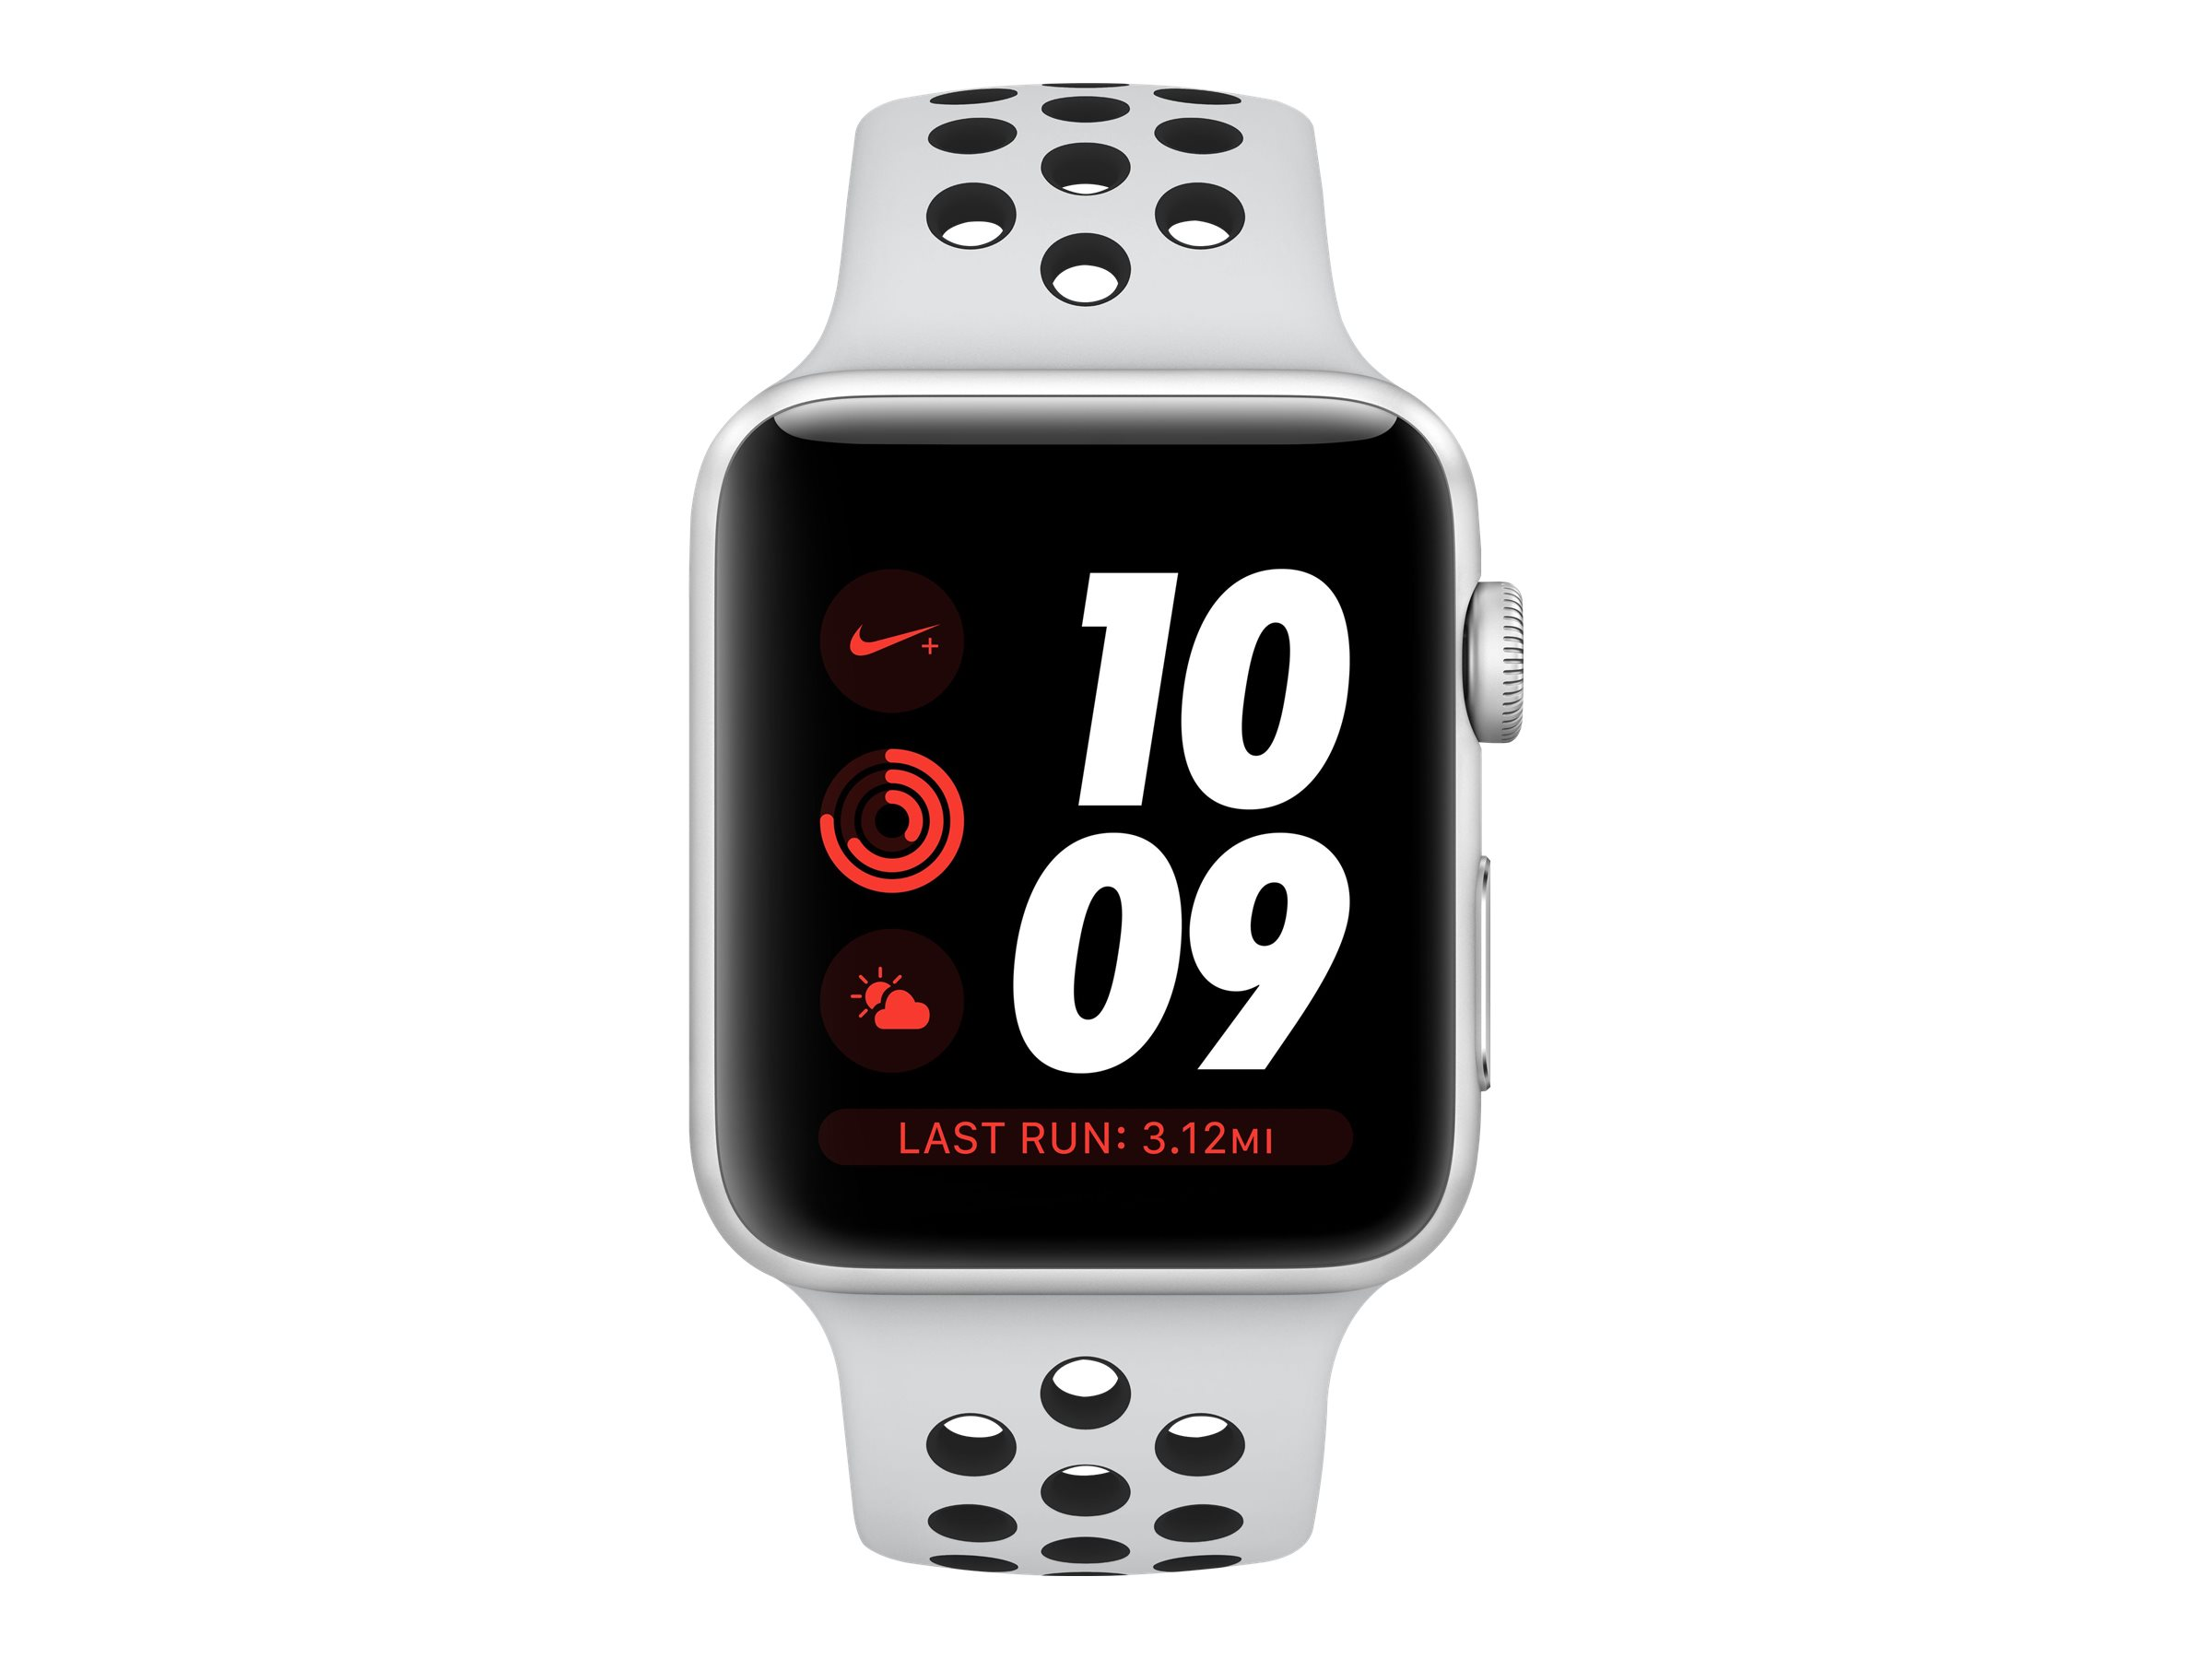 Abastecer rumor America  Apple Watch Nike+ Series 3 (GPS) - 38 mm - silver aluminum - smart watch  with Nike sport band - Walmart.com - Walmart.com